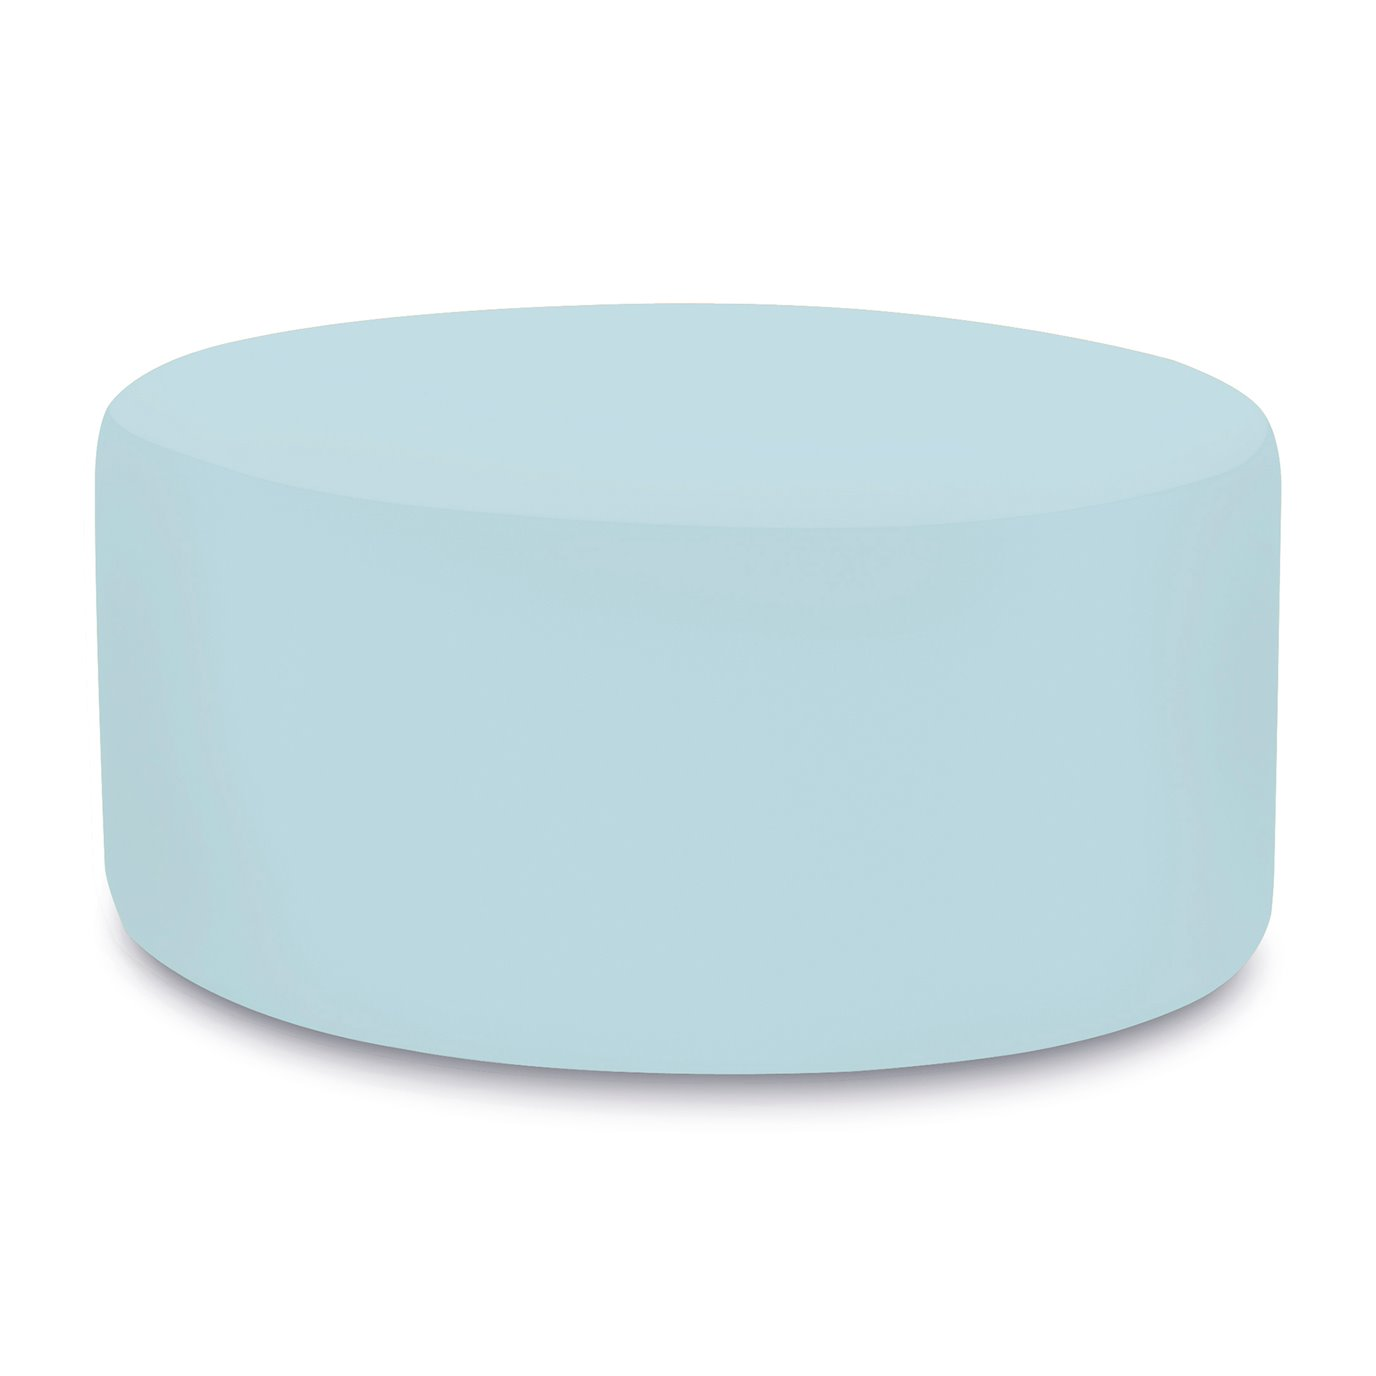 Howard Elliott Universal Round Ottoman Cover Sunbrella Outdoor Seascape Breeze - Cover Only, Base Not Included